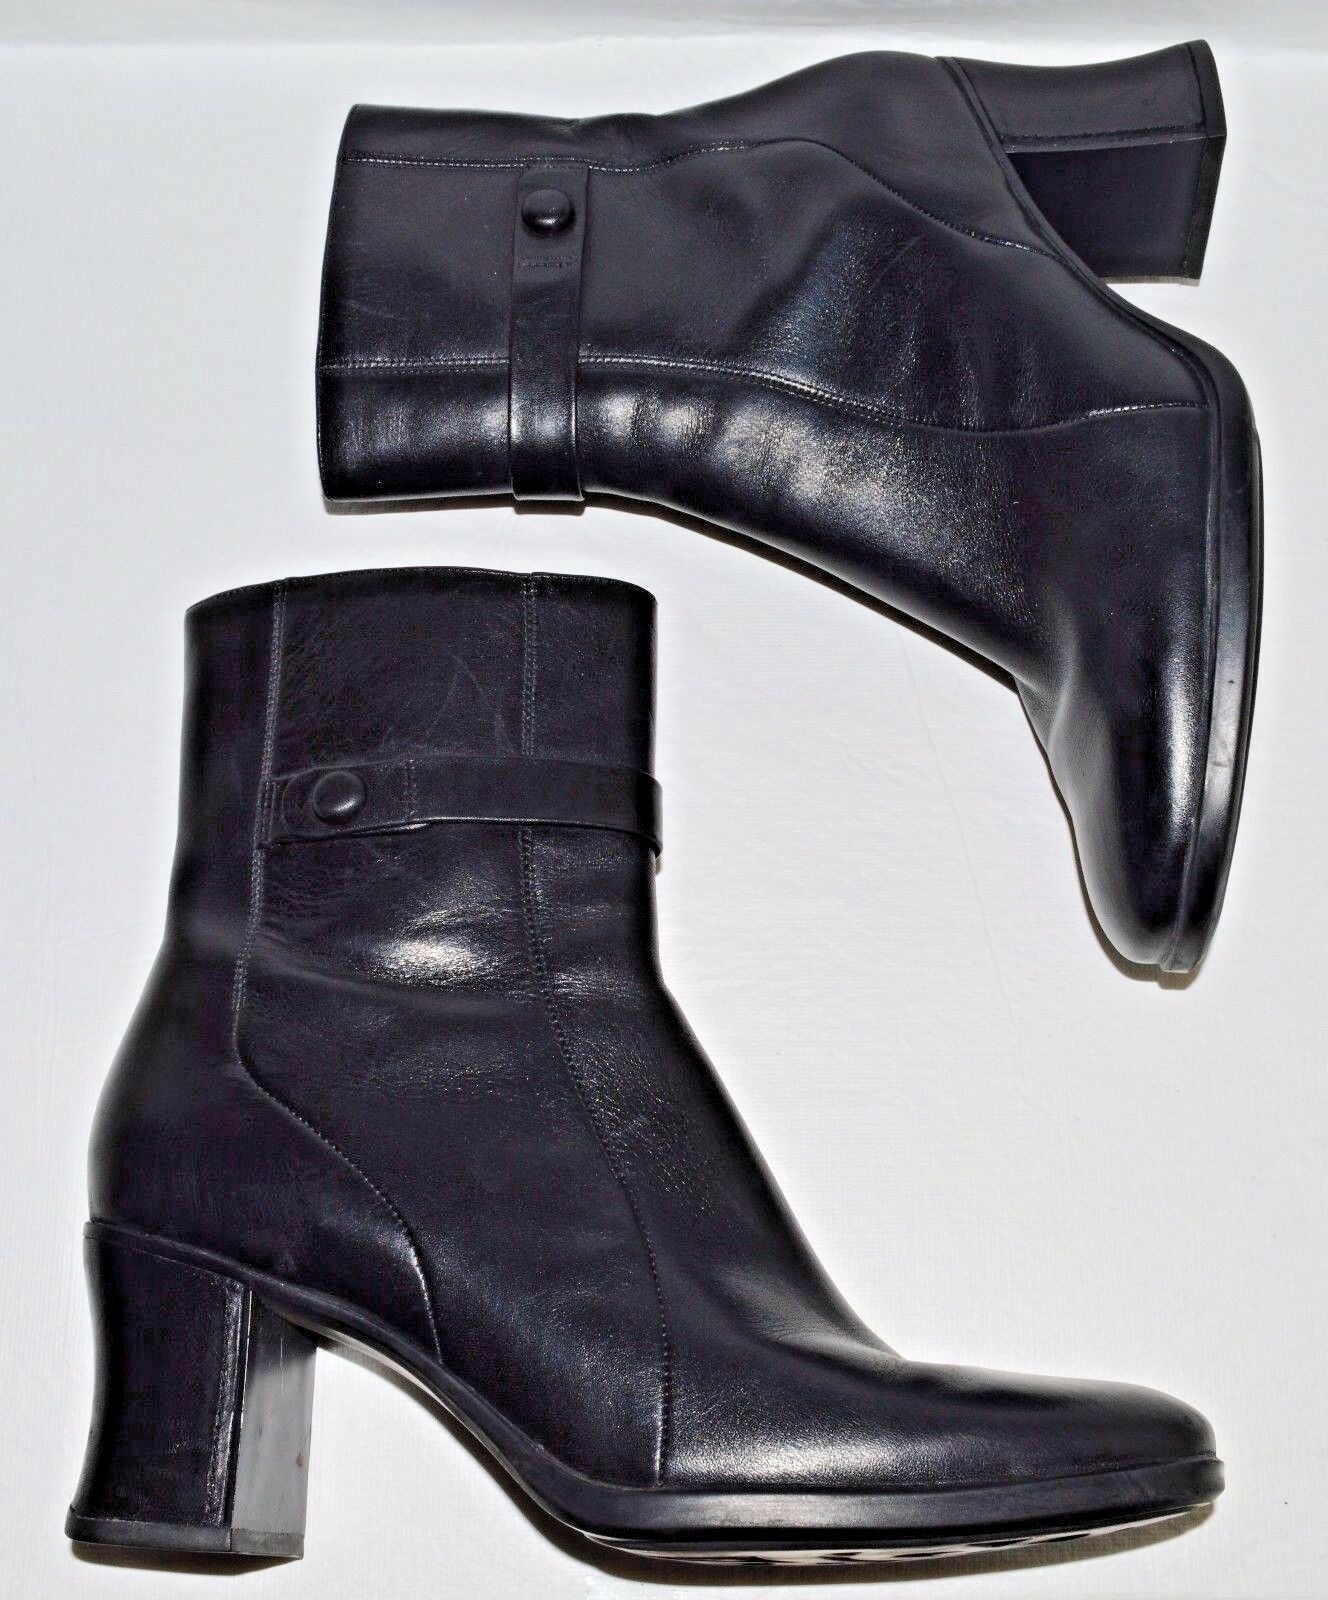 CLARKS SZ 8 M BLACK LEATHER ANKLE BOOTS BOOTIES HEELS EXCELLENT